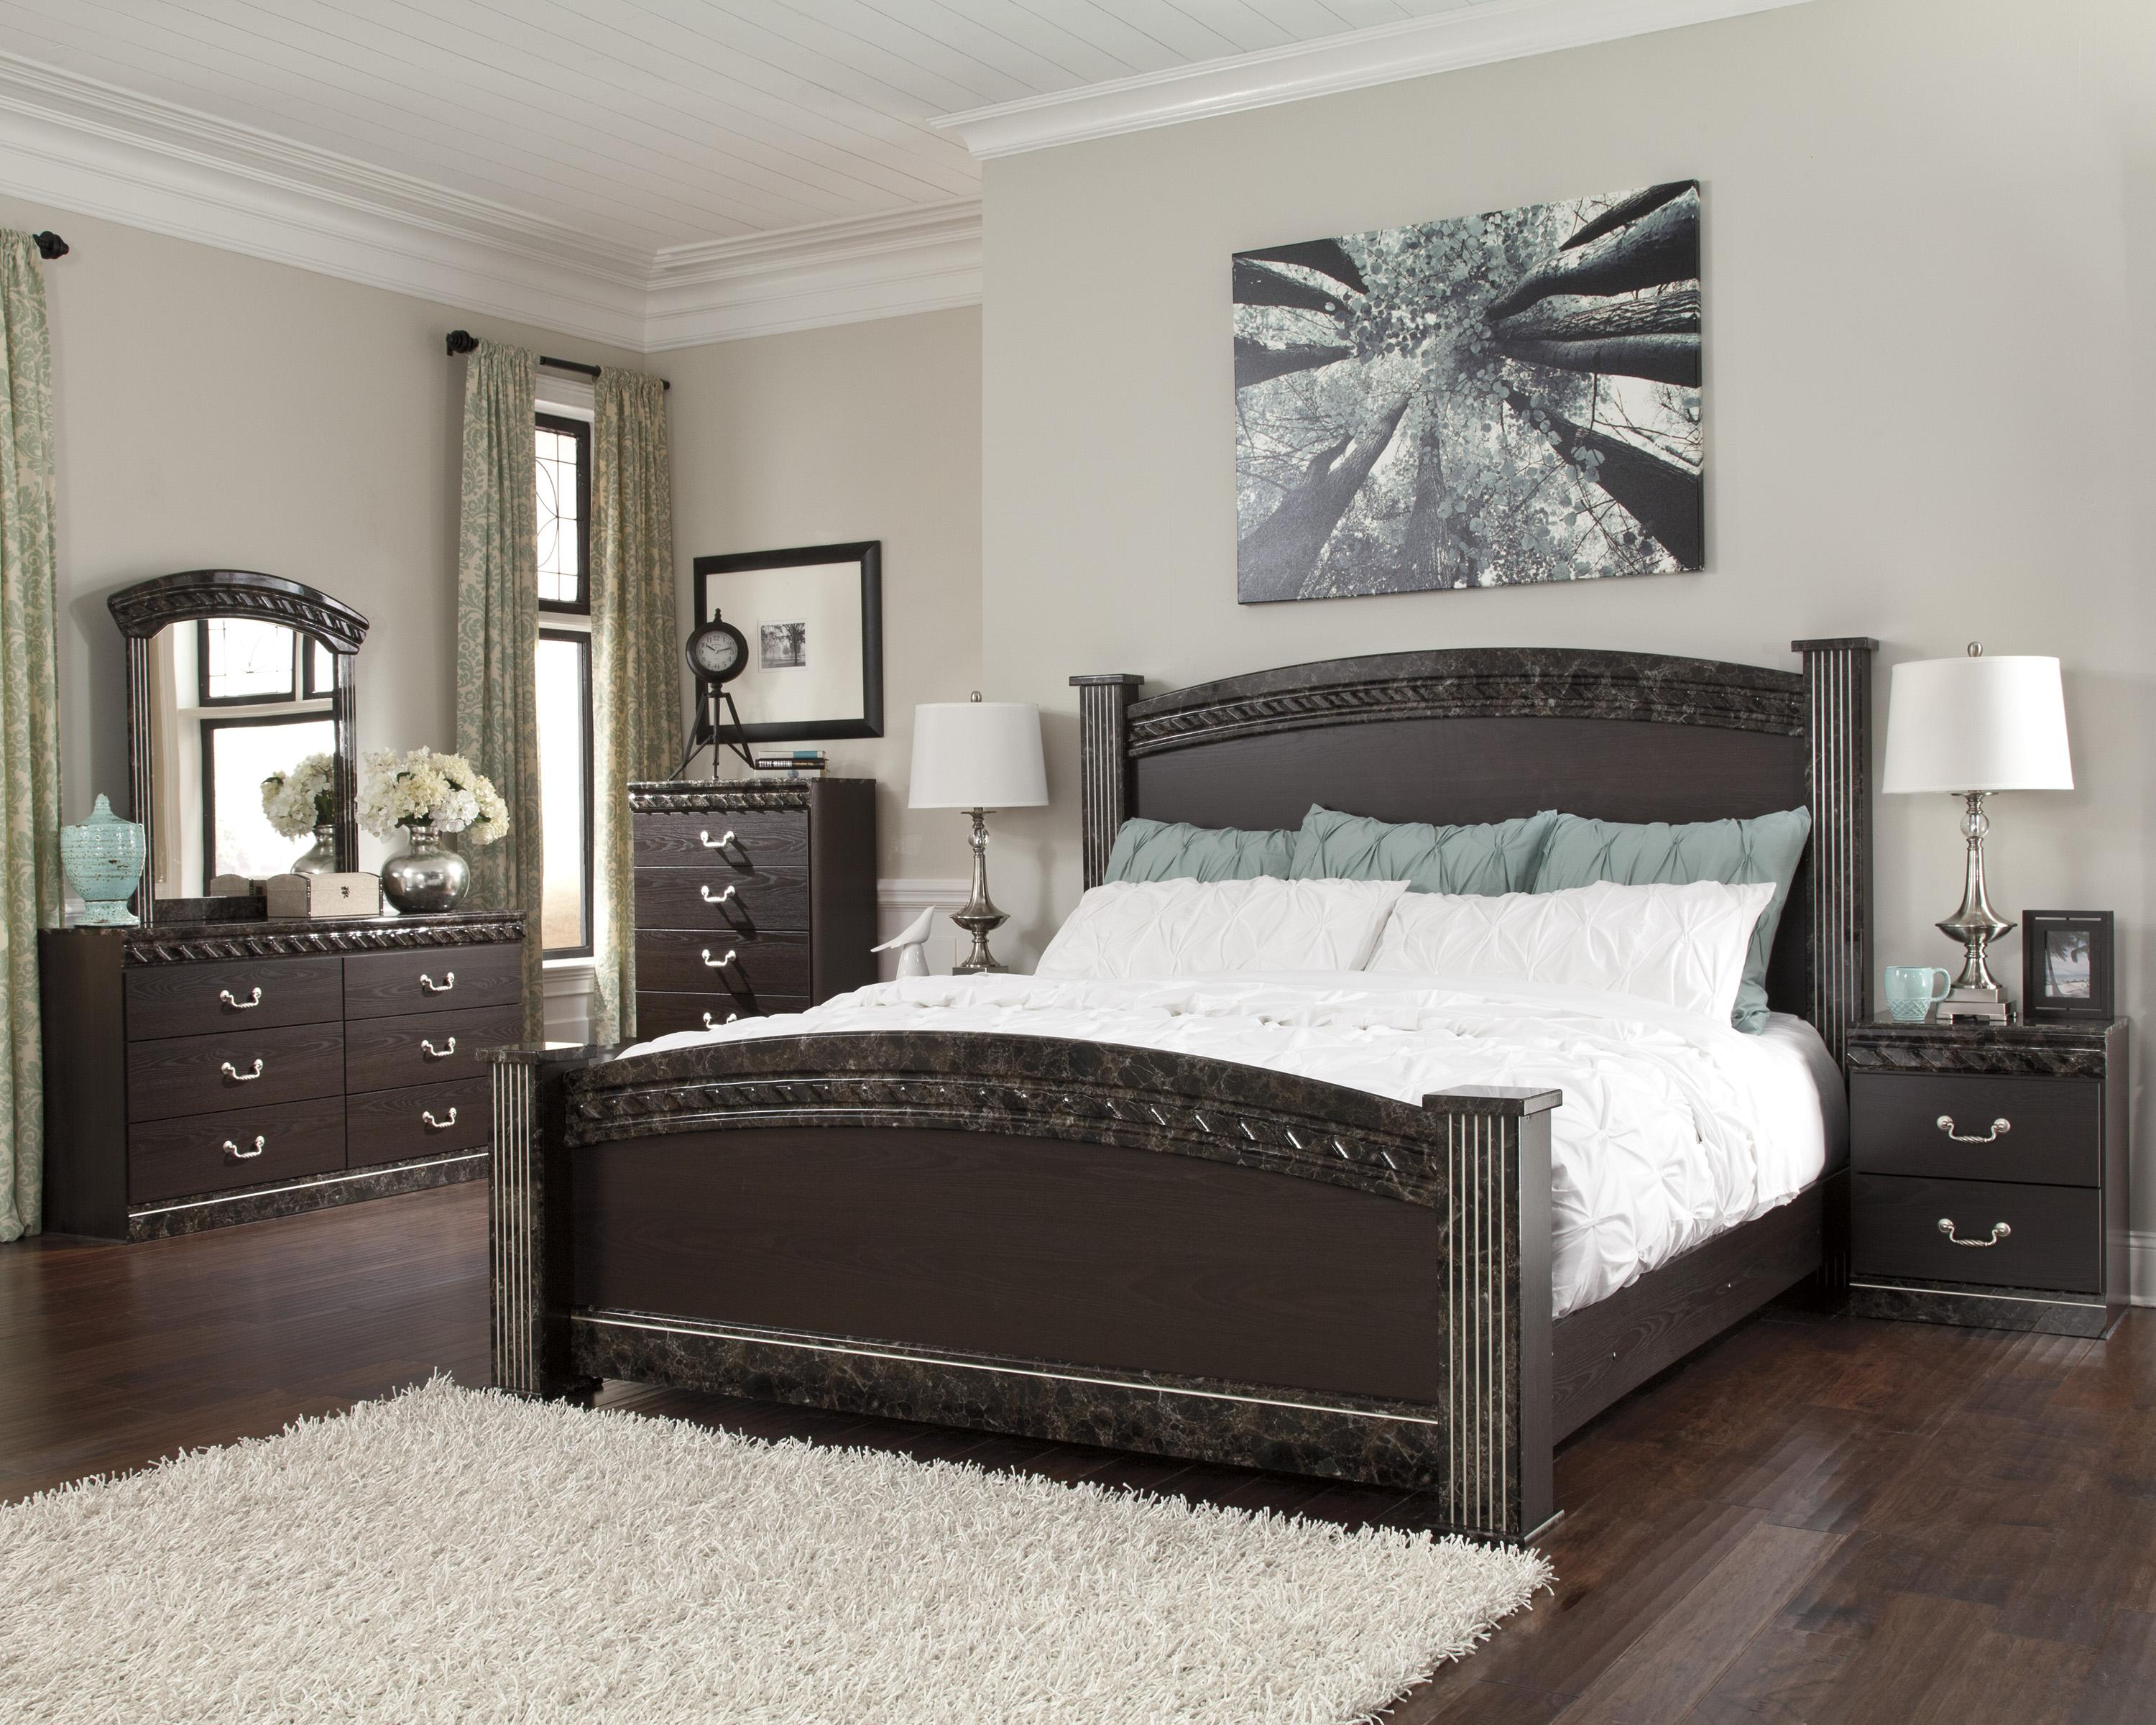 Signature Design by Ashley Vachel King Bedroom Group - Item Number: B264 K Bedroom Group 1